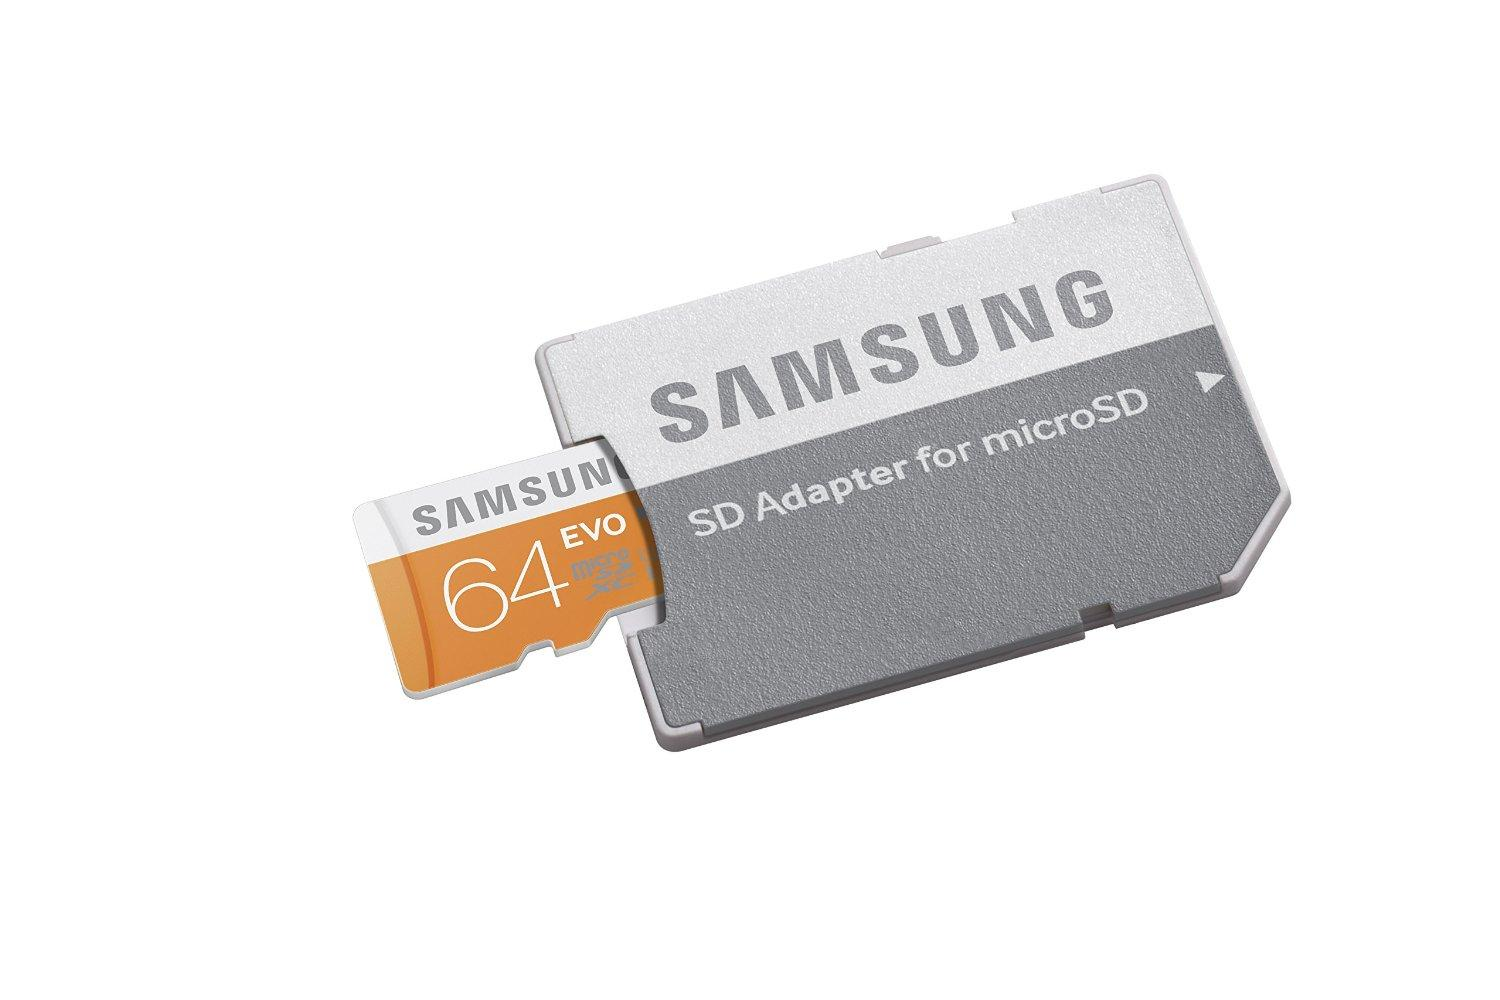 $18.74 Samsung 64GB or 64GB EVO Class 10 microSD Card with Adapter